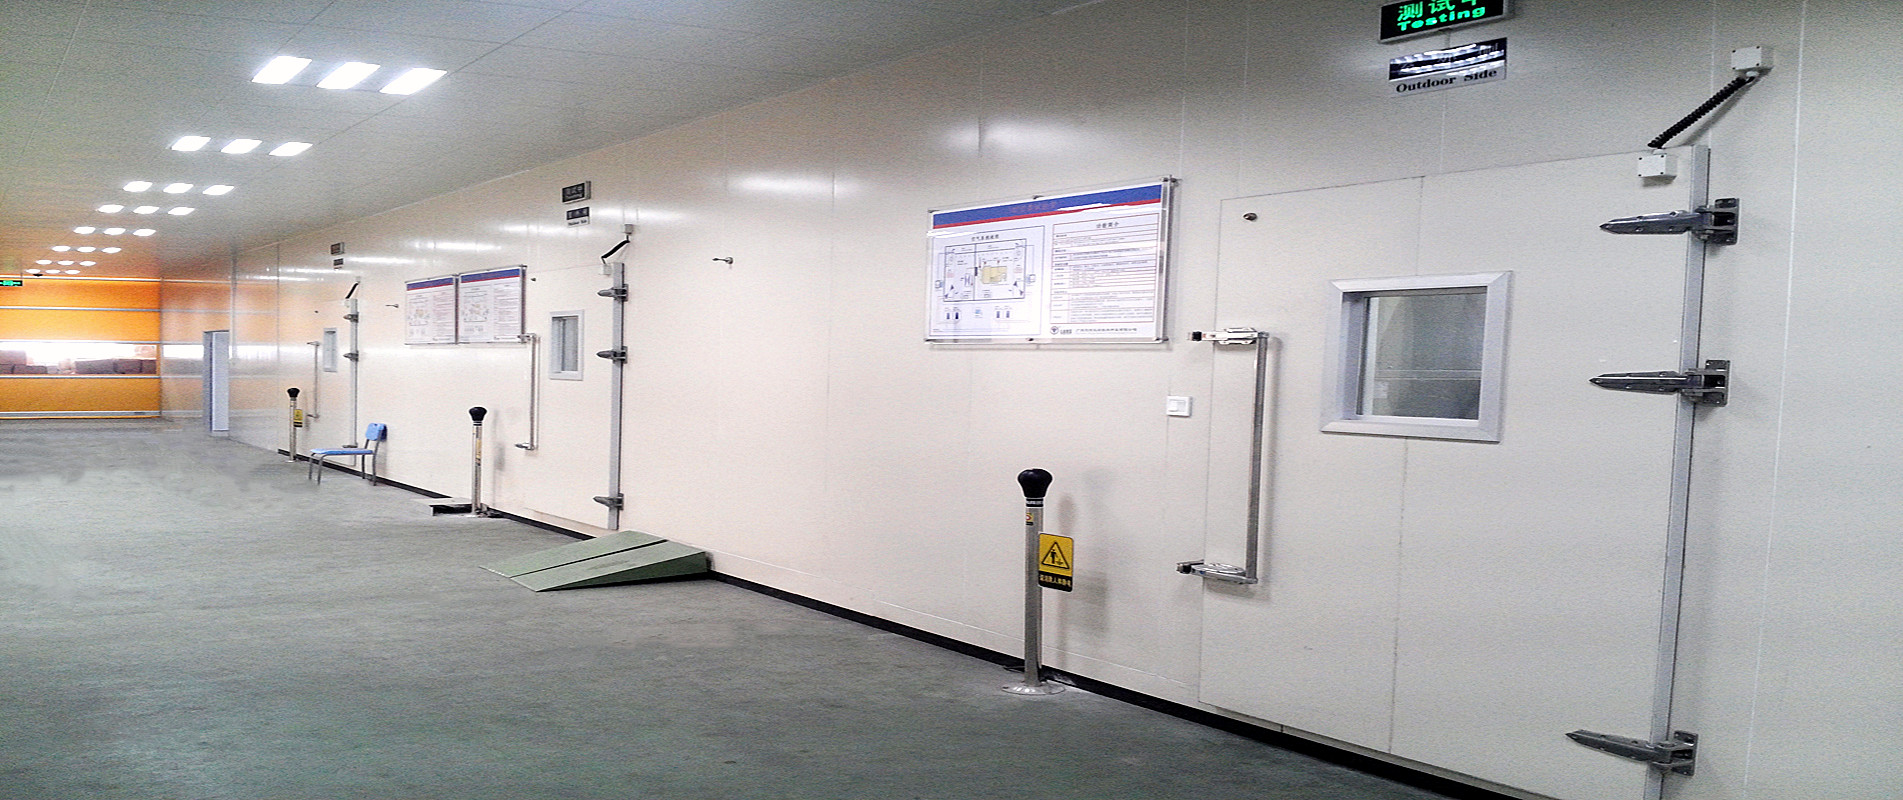 Commercial Refrigerator Performance Test Laboratory